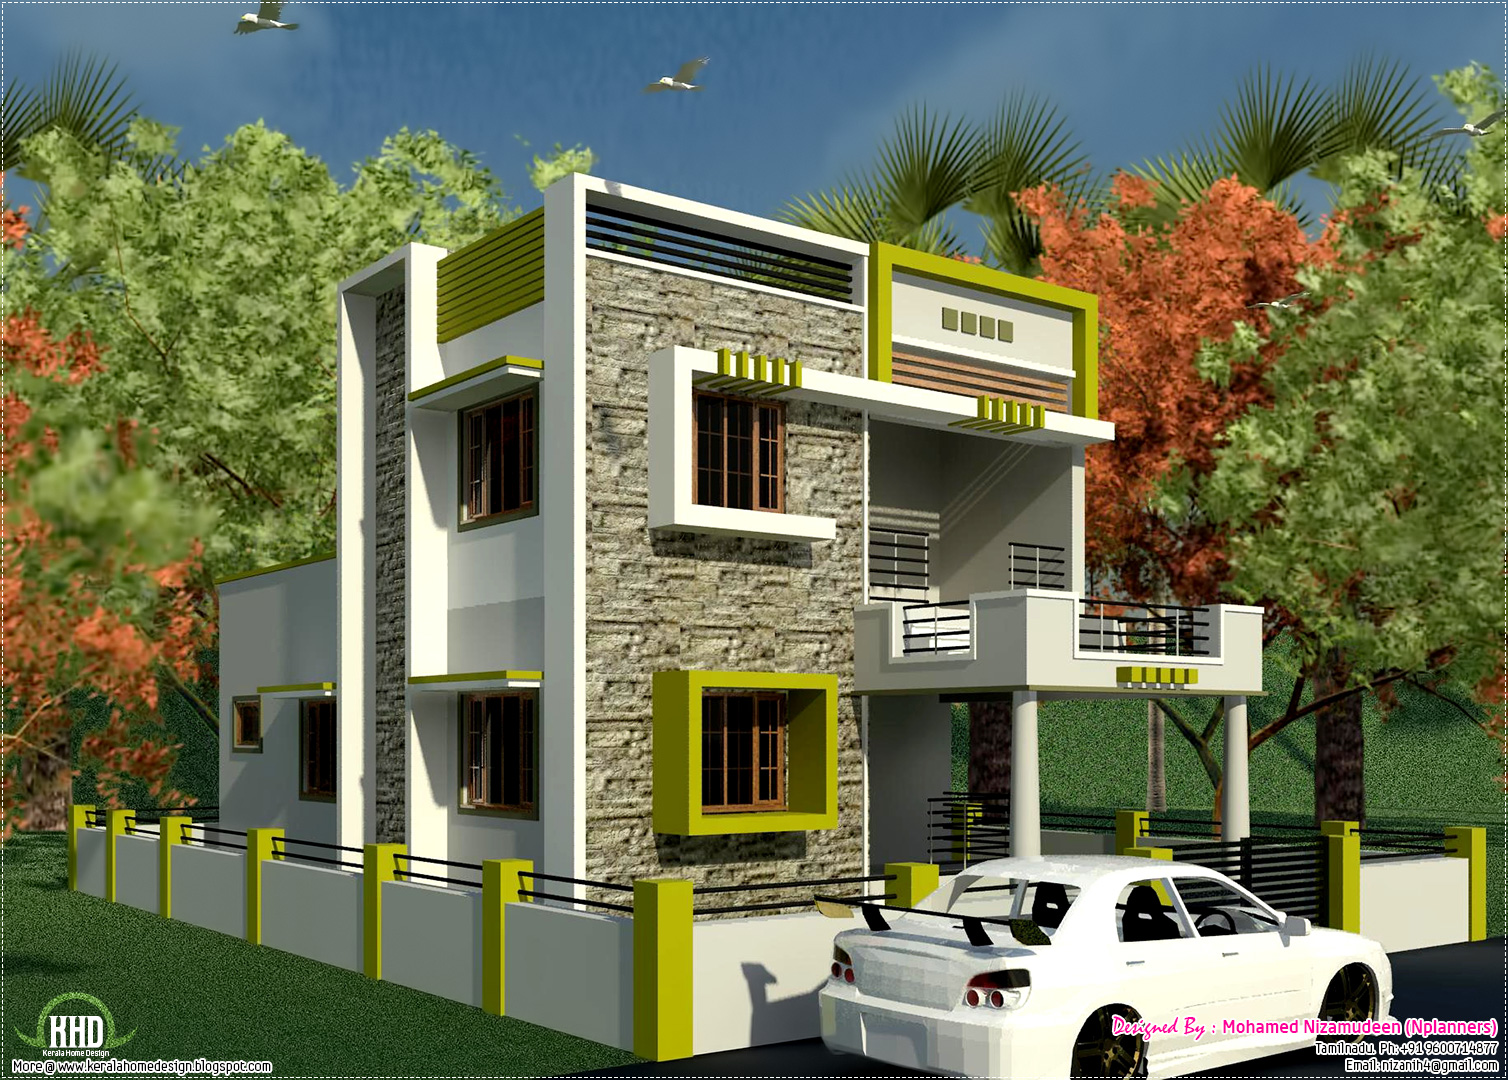 South indian style new modern 1460 sq feet house design for Modern small home designs india